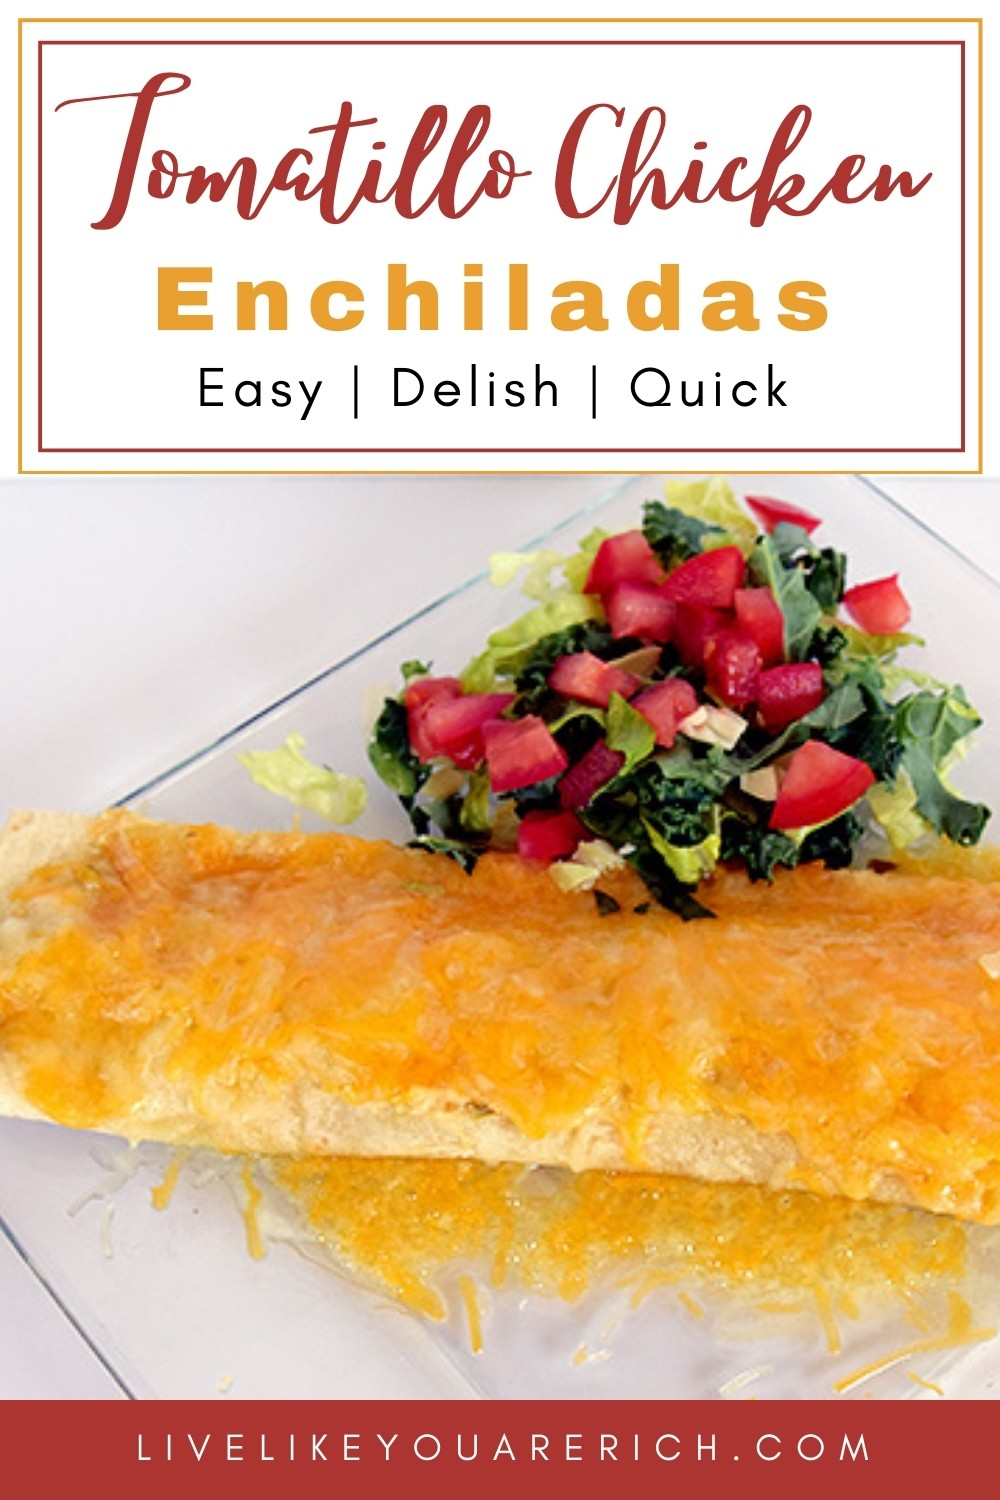 This tomatillo chicken enchilada recipe is an amazing recipe that can be prepped in about 7 minutes or less. You can make it all from cans or use as many fresh ingredients as you desire. #enchiladas #tomatillochicken